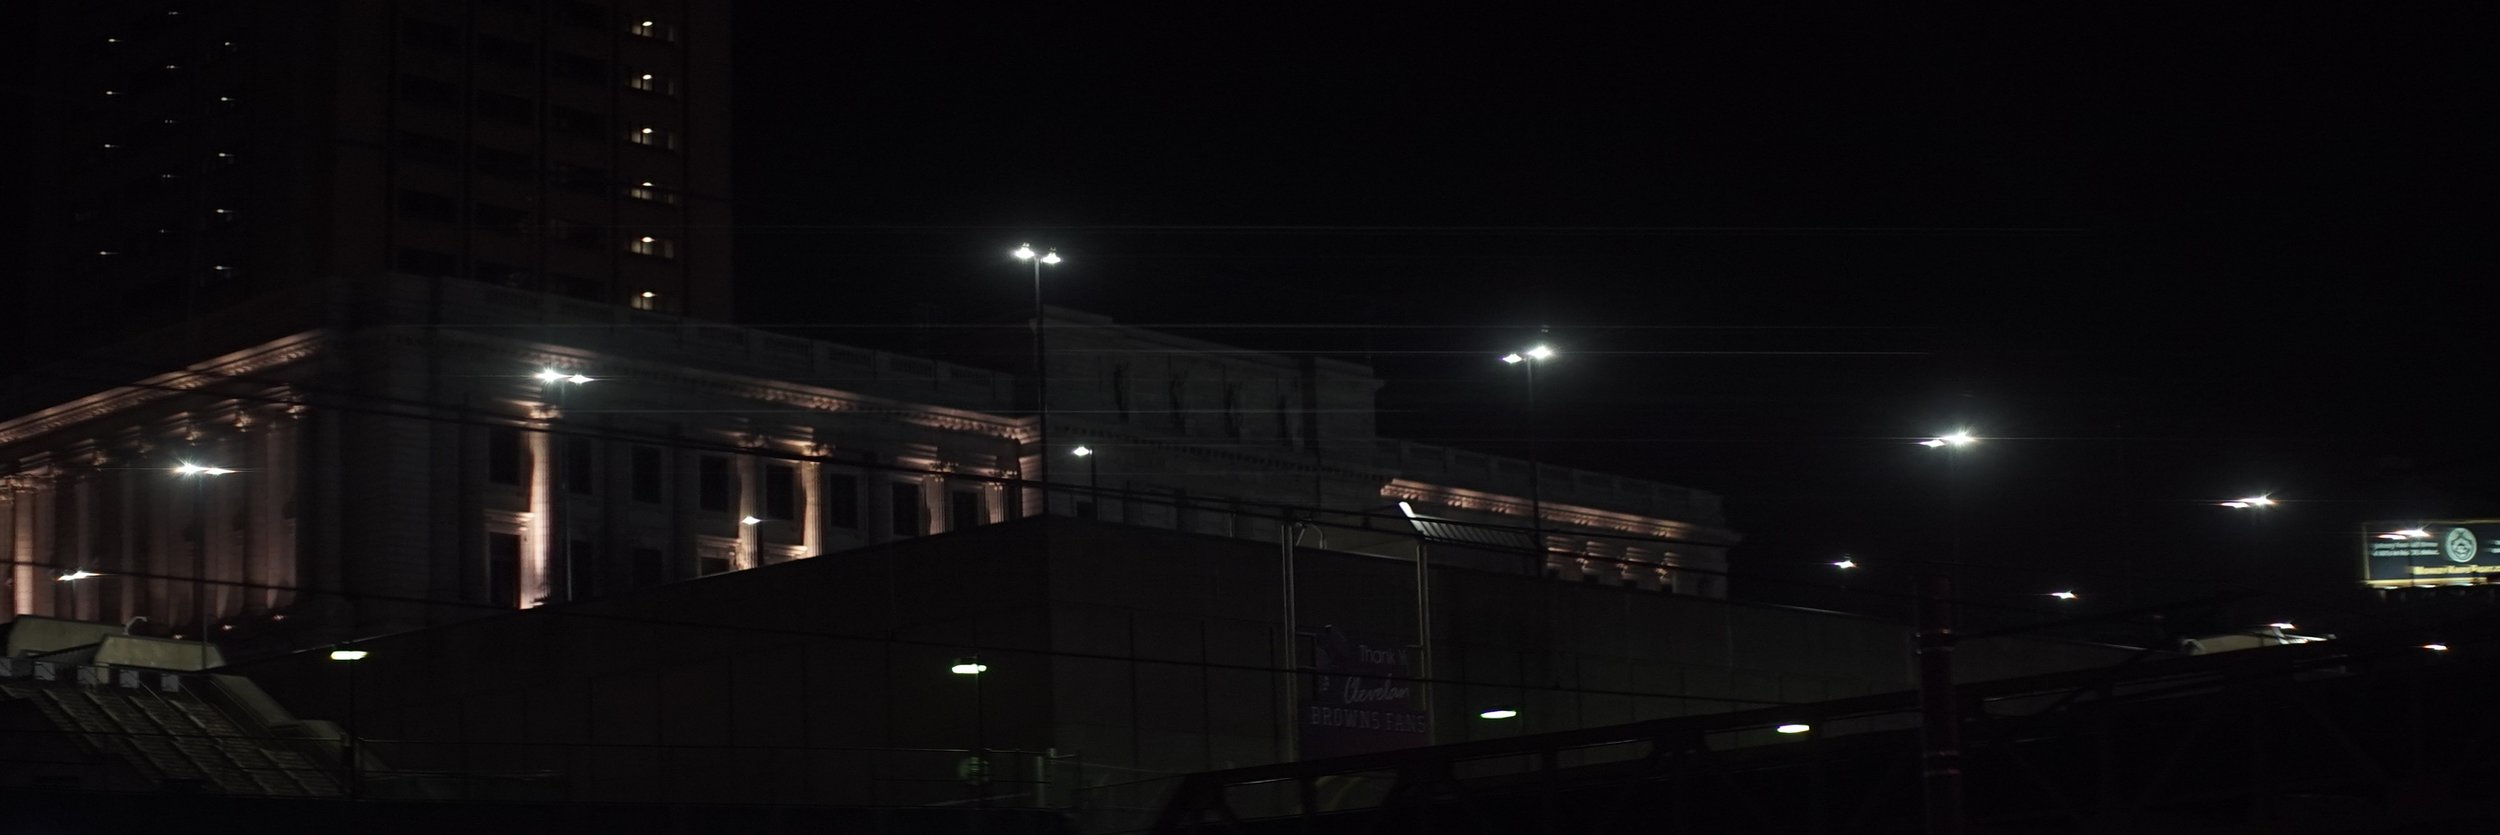 Lomo 75mm Anamorphic Lens | A few skinny flares across from the Amtrak station in downtown Cleveland, OH. - Photo by: Keith Nickoson